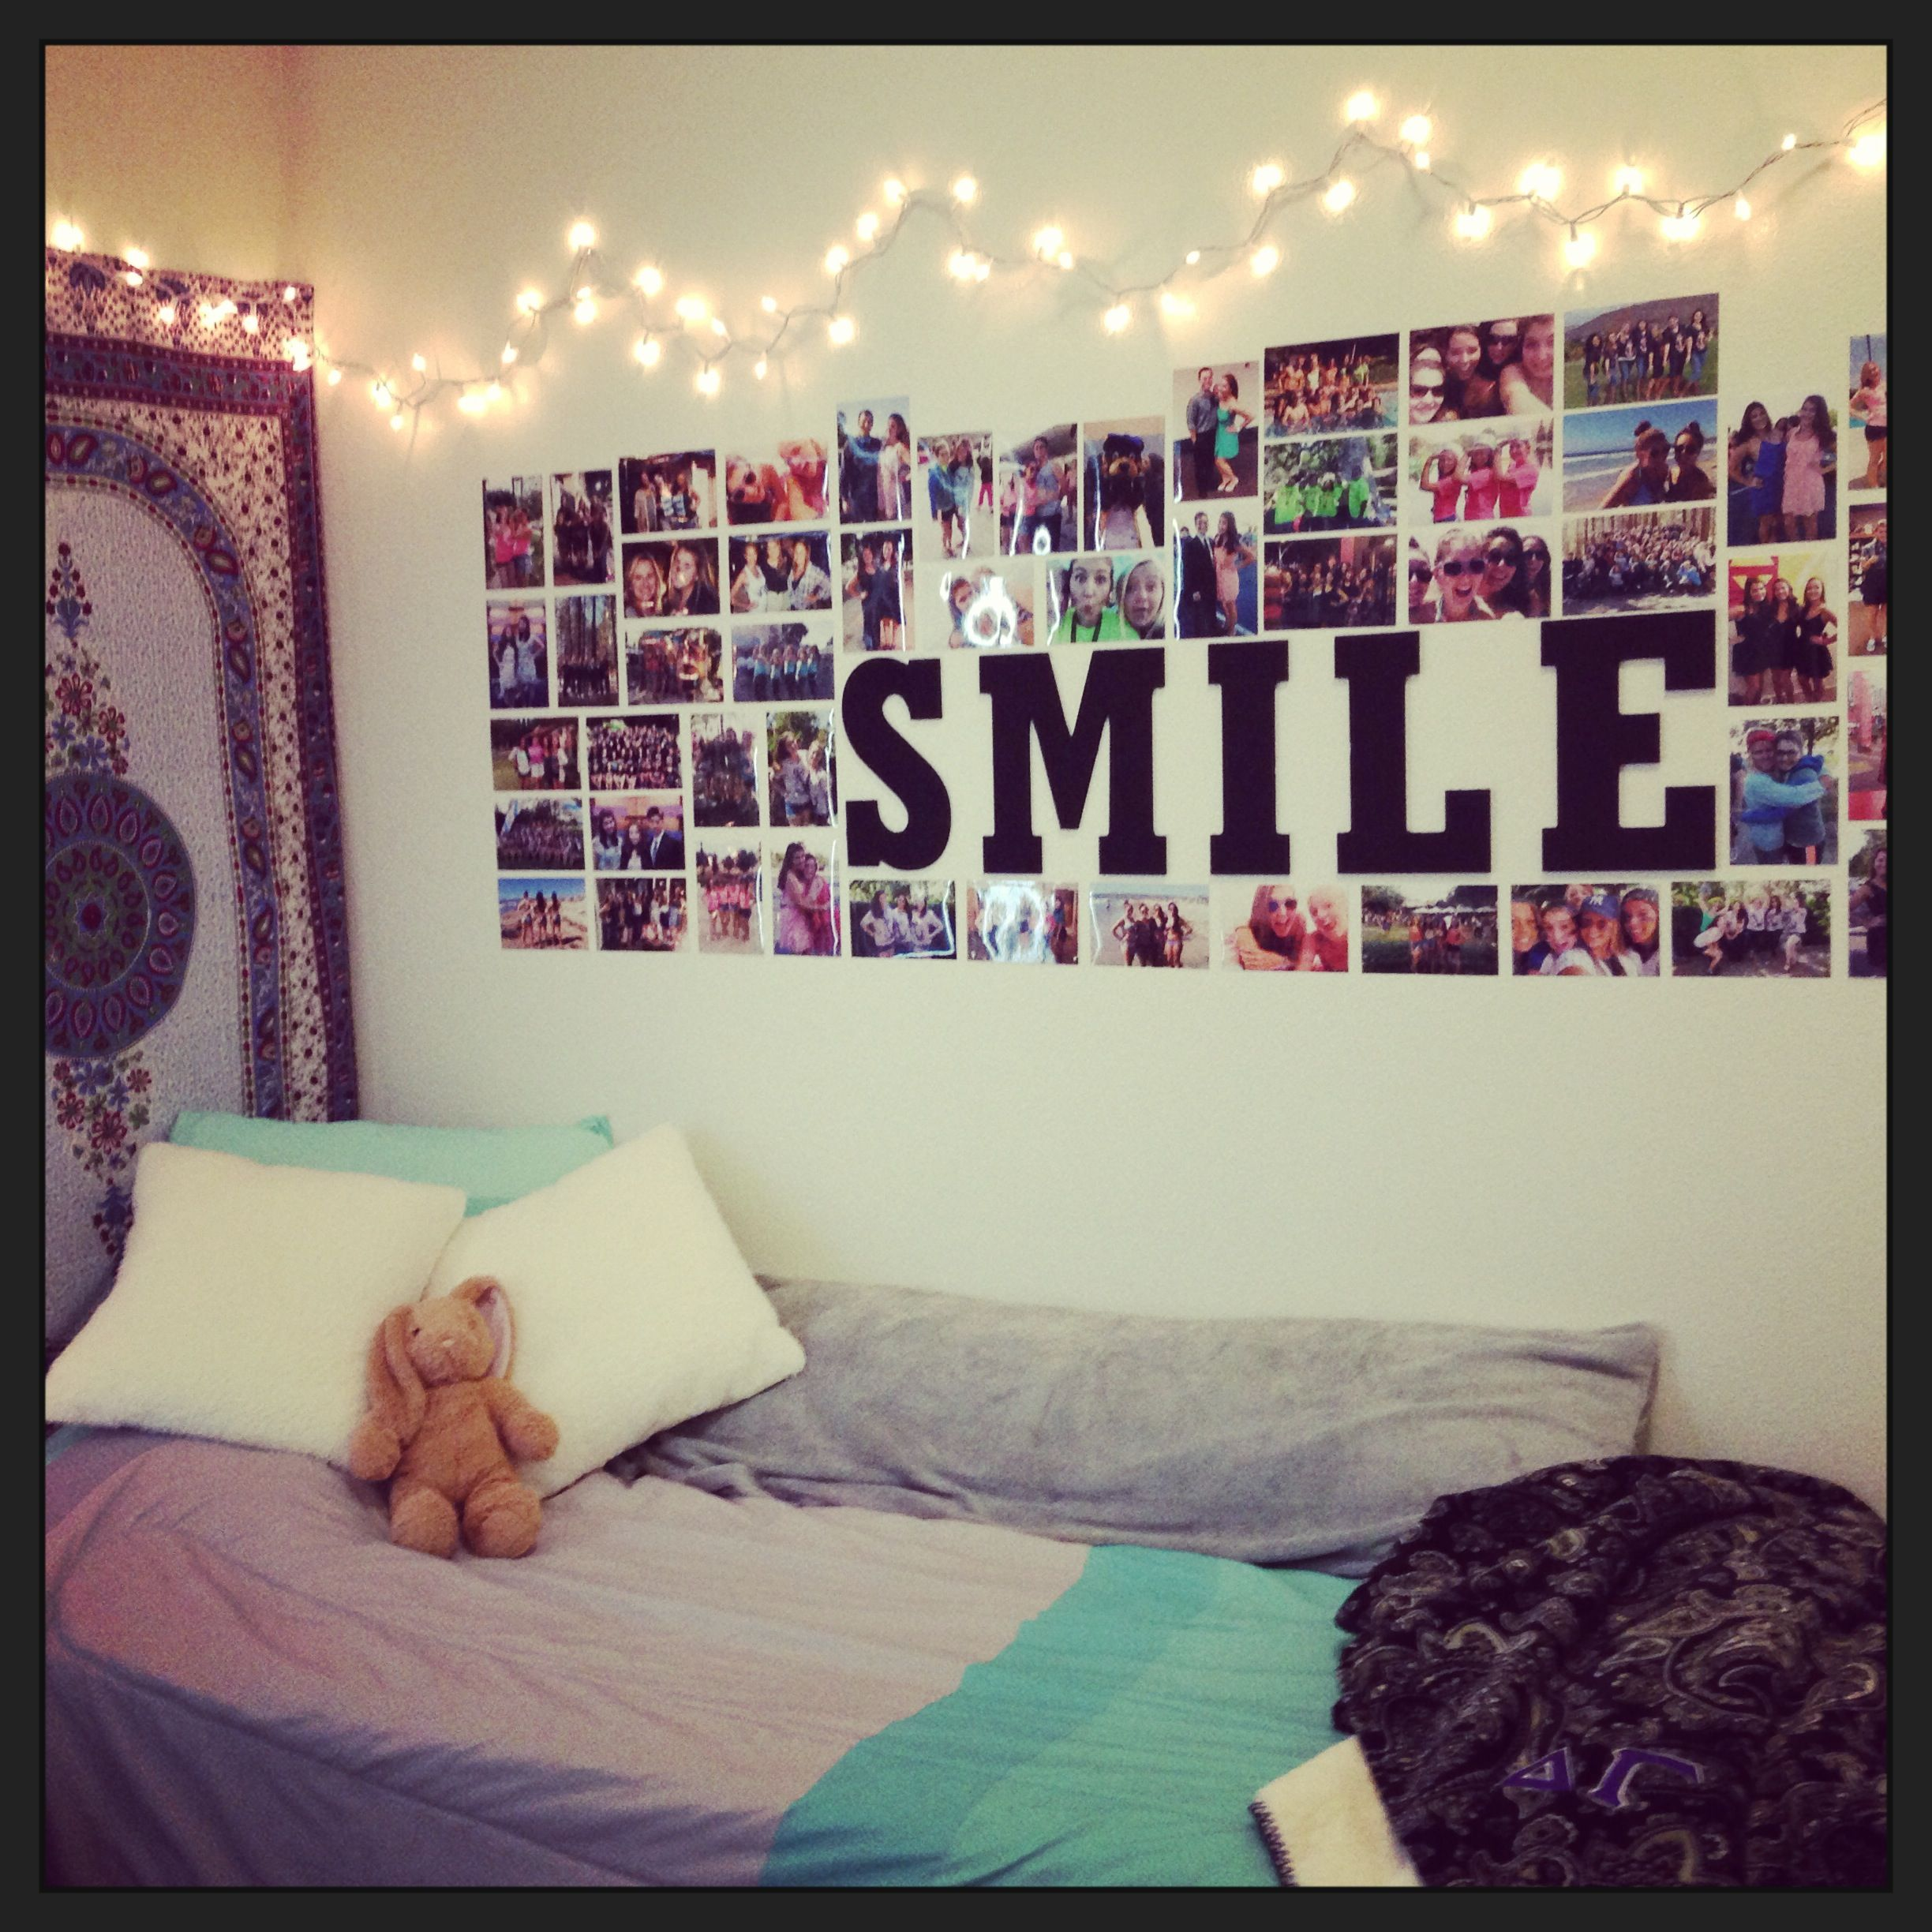 Decorative lights for dorm room - Cute Way To Furnish Your Dorm Room A Cheap Tapestry Homemade Painted Wooden Letters